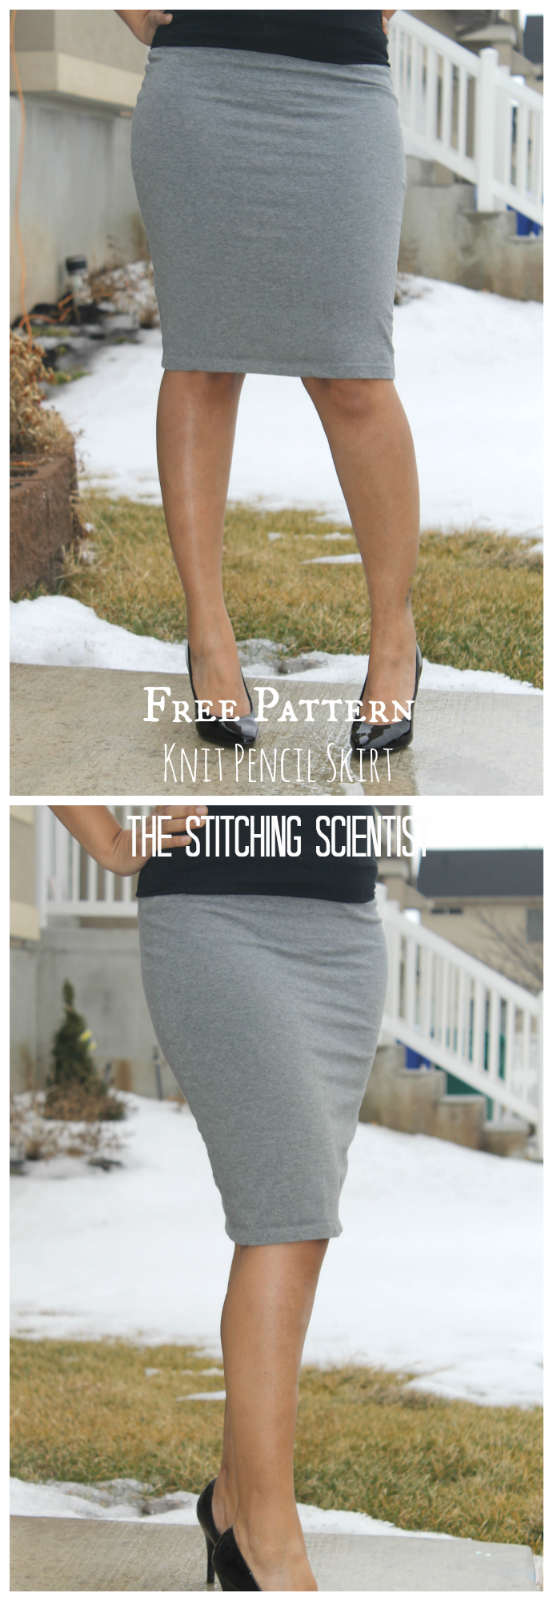 Free Skirt Patterns-Sexy Knit Pencil Skirt